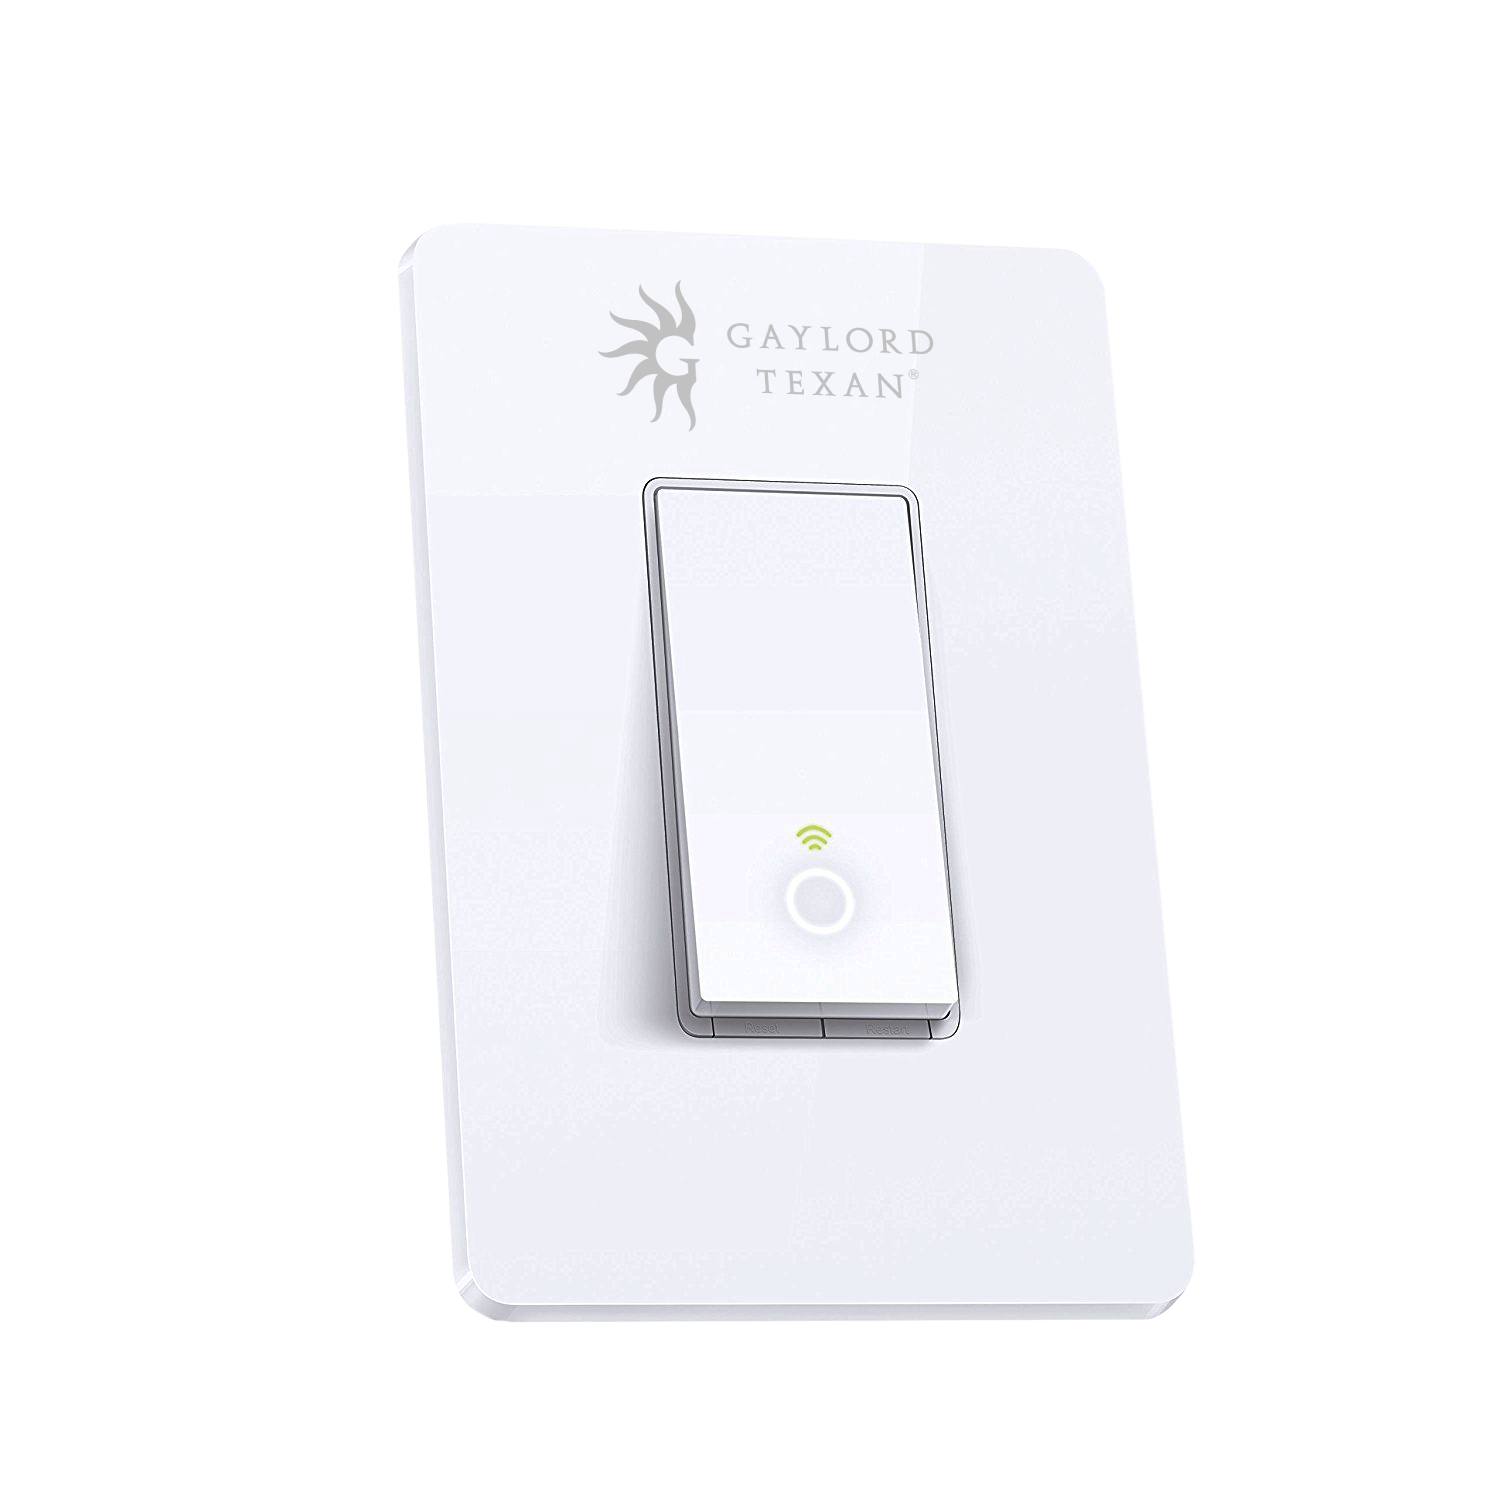 Tp Link Smart Light Switch Control Your Fixtures With This Simple Switch By Tp Link From The Ceiling Fan To The Lights Ou Smart Lighting Tp Link Light Switch